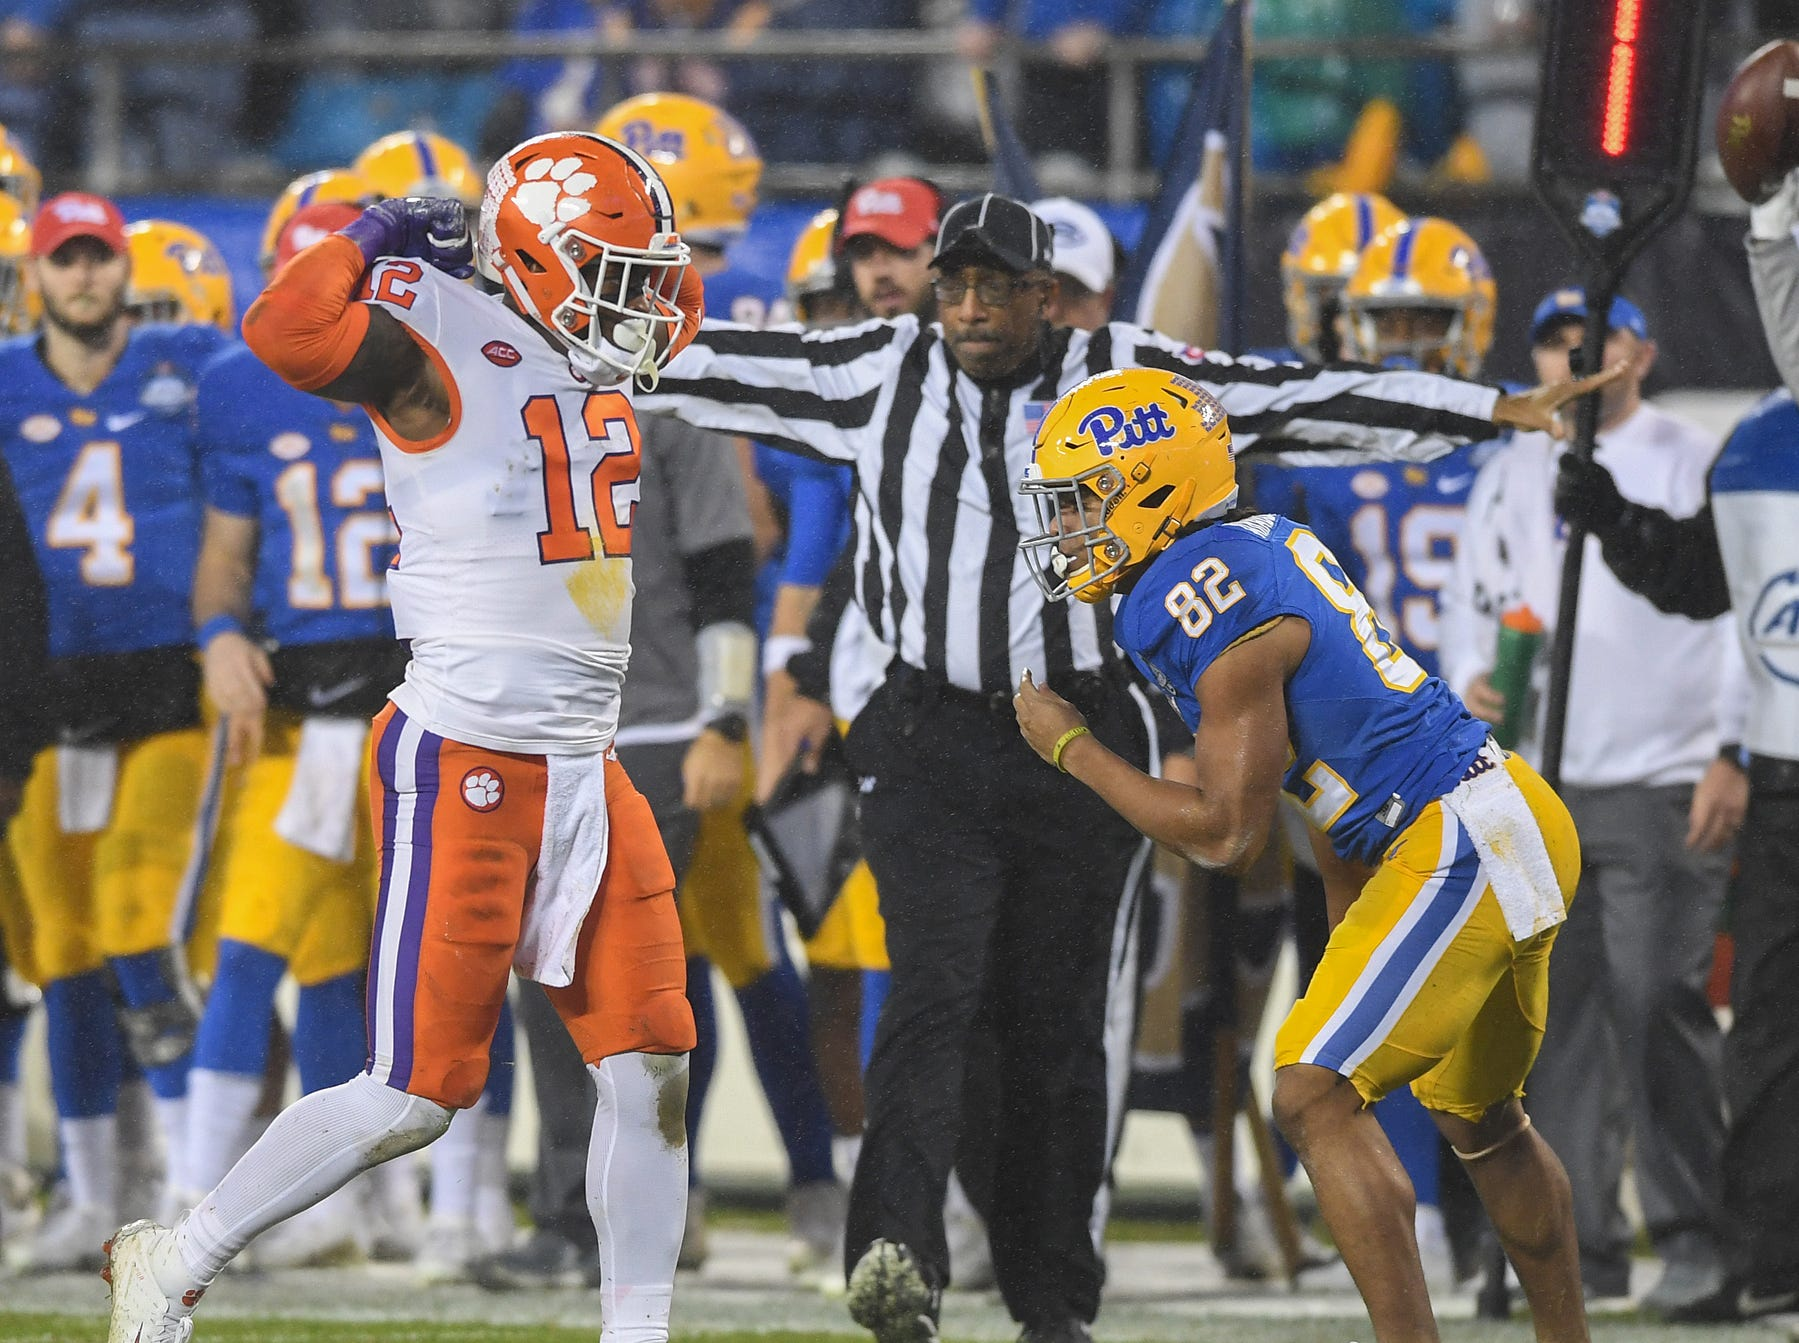 Clemson defensive back K'Von Wallace (12) reacts a defensive stop against Pittsburgh wide receiver Rafael Araujo-Lopes (82) during the 1st quarter of the Dr. Pepper ACC Championship at Bank of America Stadium in Charlotte, N.C. Saturday, December 1, 2018.